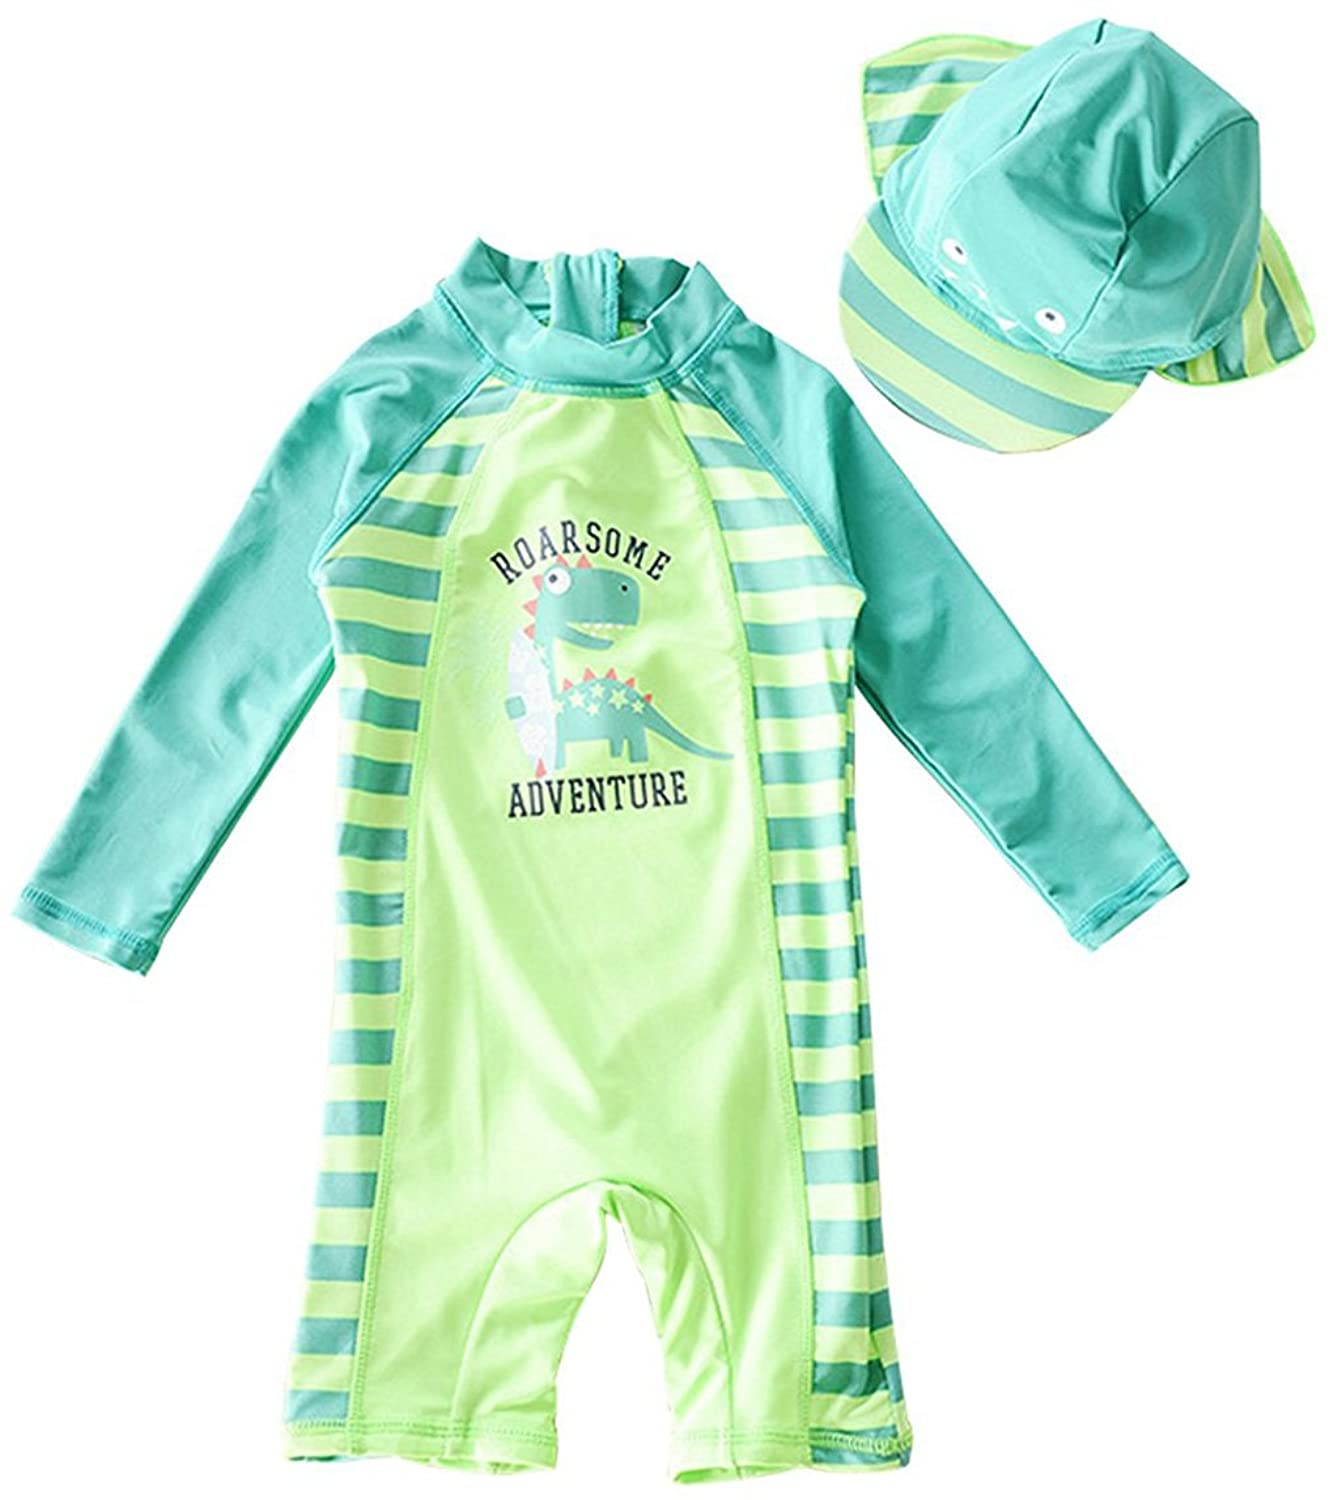 73a9a6c0fd Perfect Fit: 5 size for 1-2/2-3/3-4/4-5/5-6 years old boy. ☆ Super Cute:  Cartoon Dinosaur Print,One-piece Swimsuit Lightweight, Soft, Quick-drying,  ...